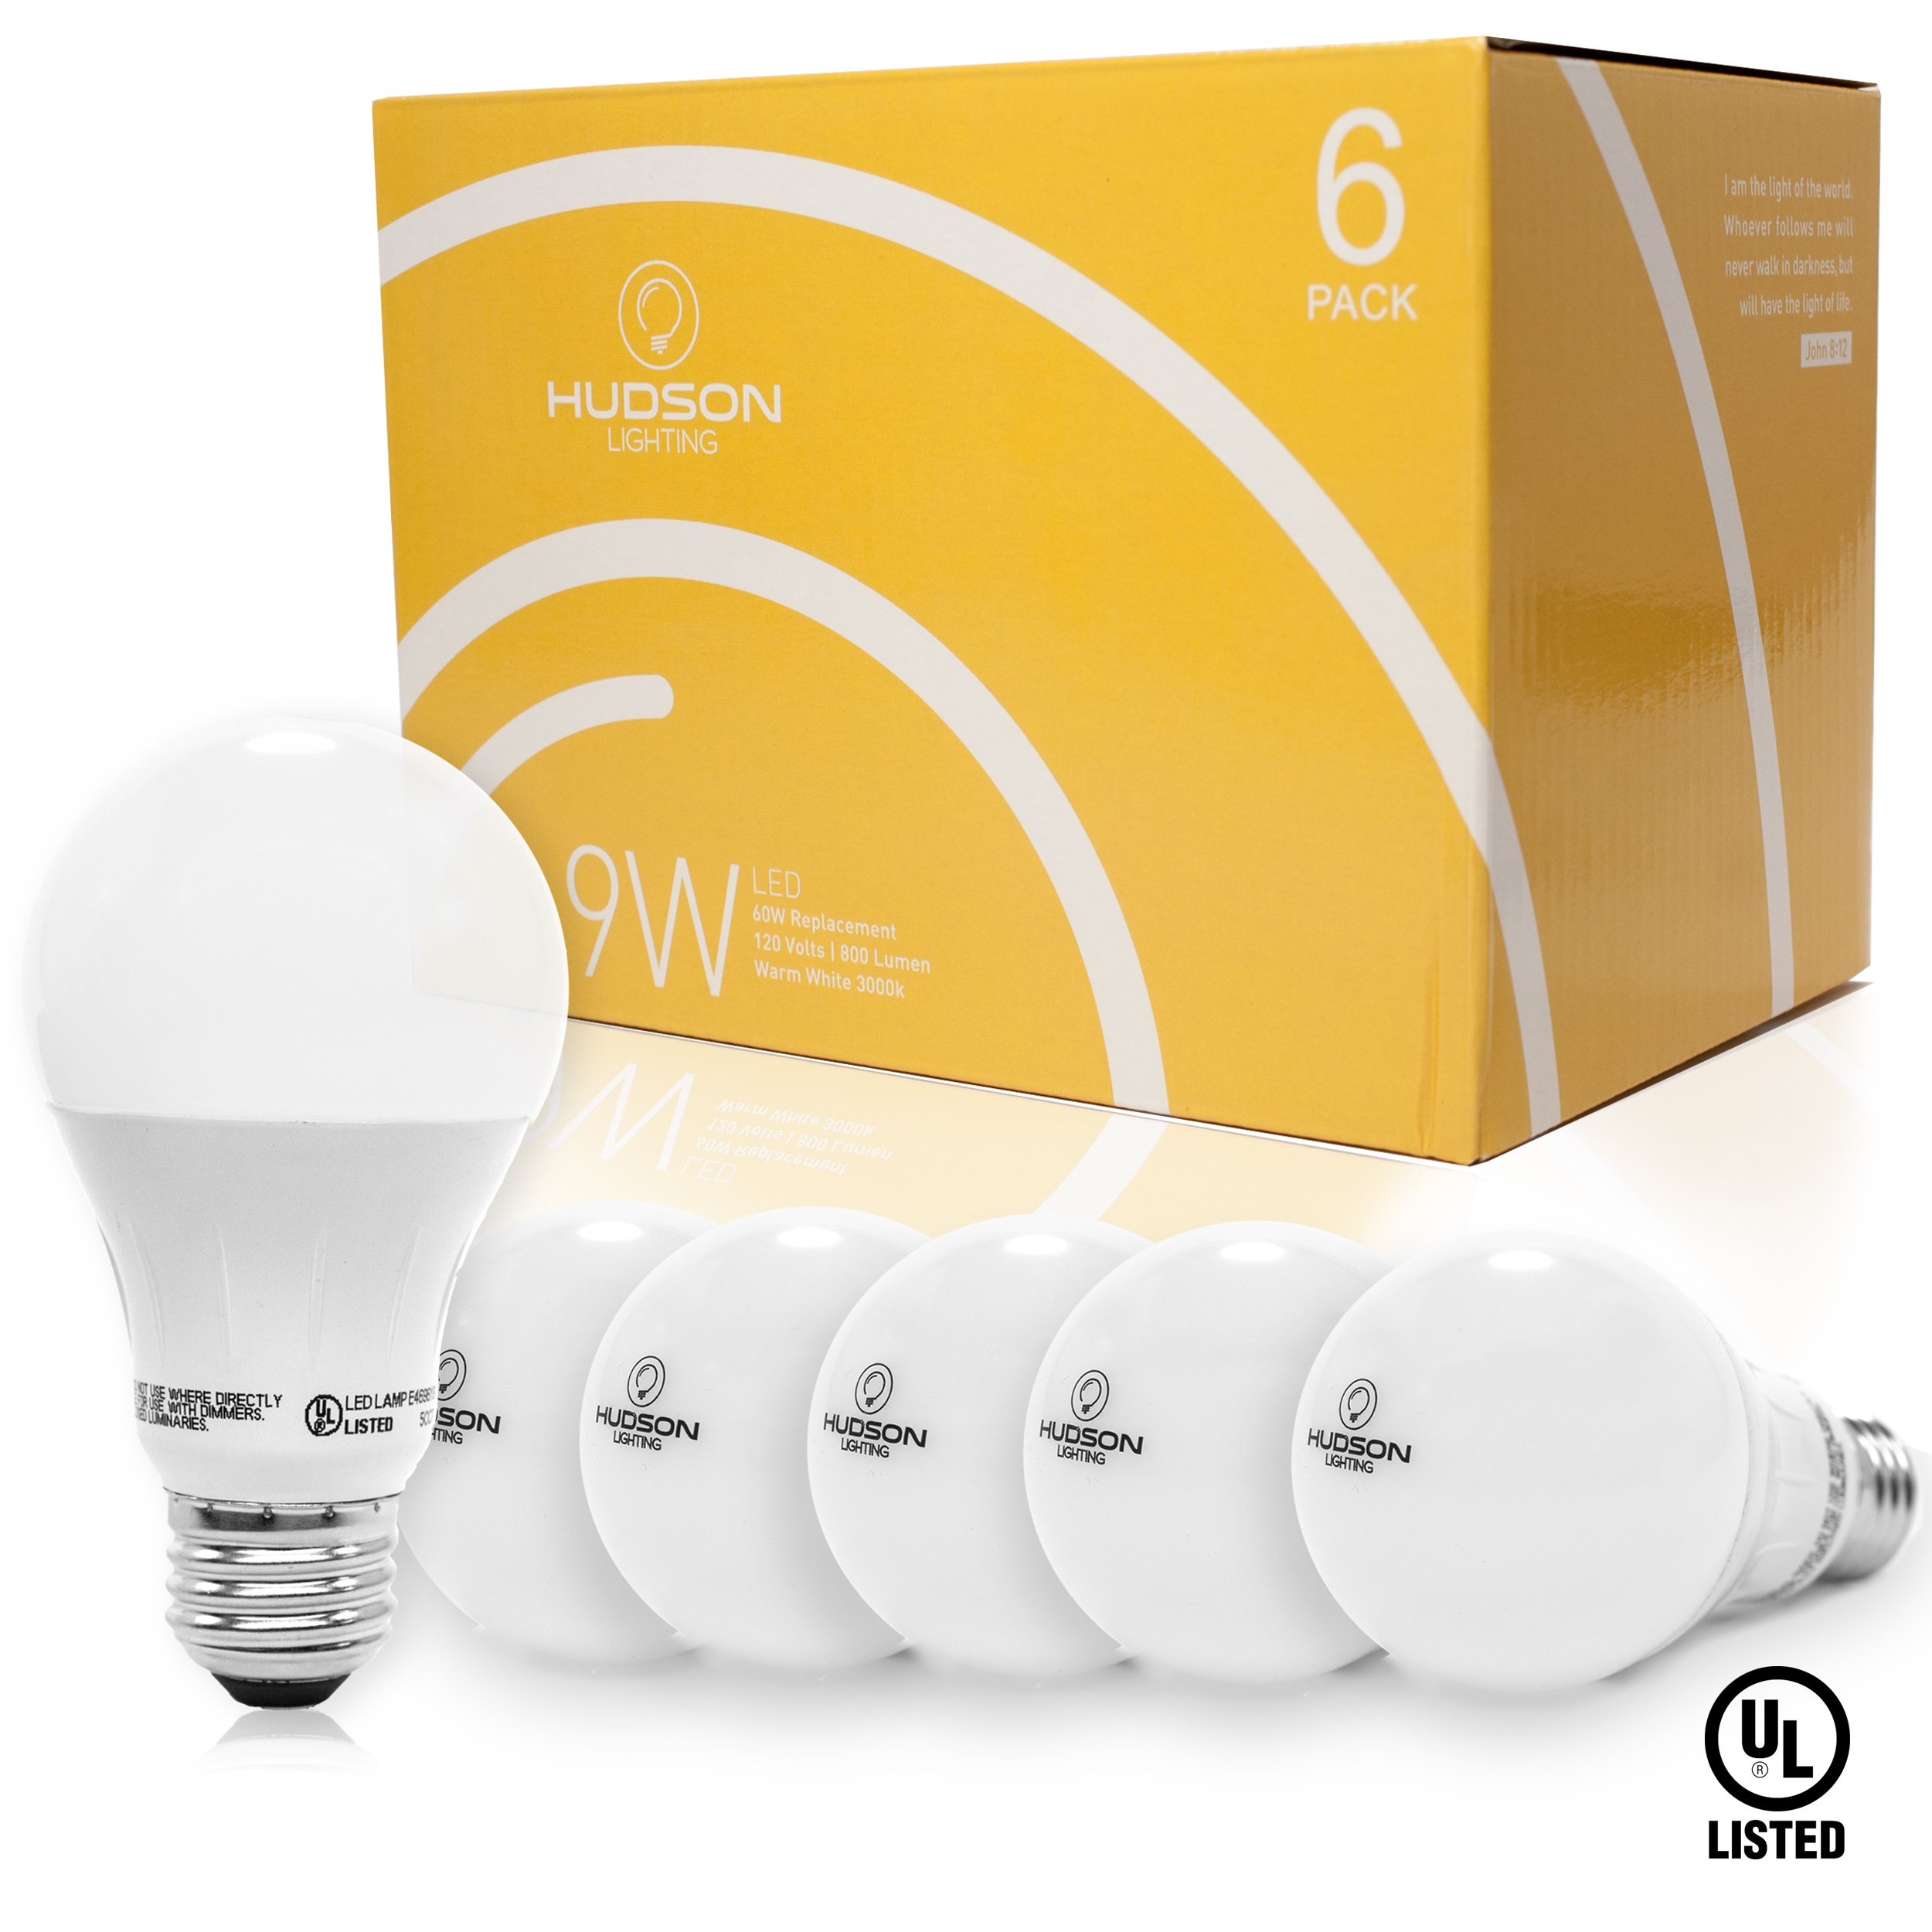 Hudson Lighting LED Light Bulbs- UL Listed- 60 Watt Equivalent - A19 - 800 Lumens - Warm White 3000k - 9 Watt - Indoor and outdoor - 6 Pack